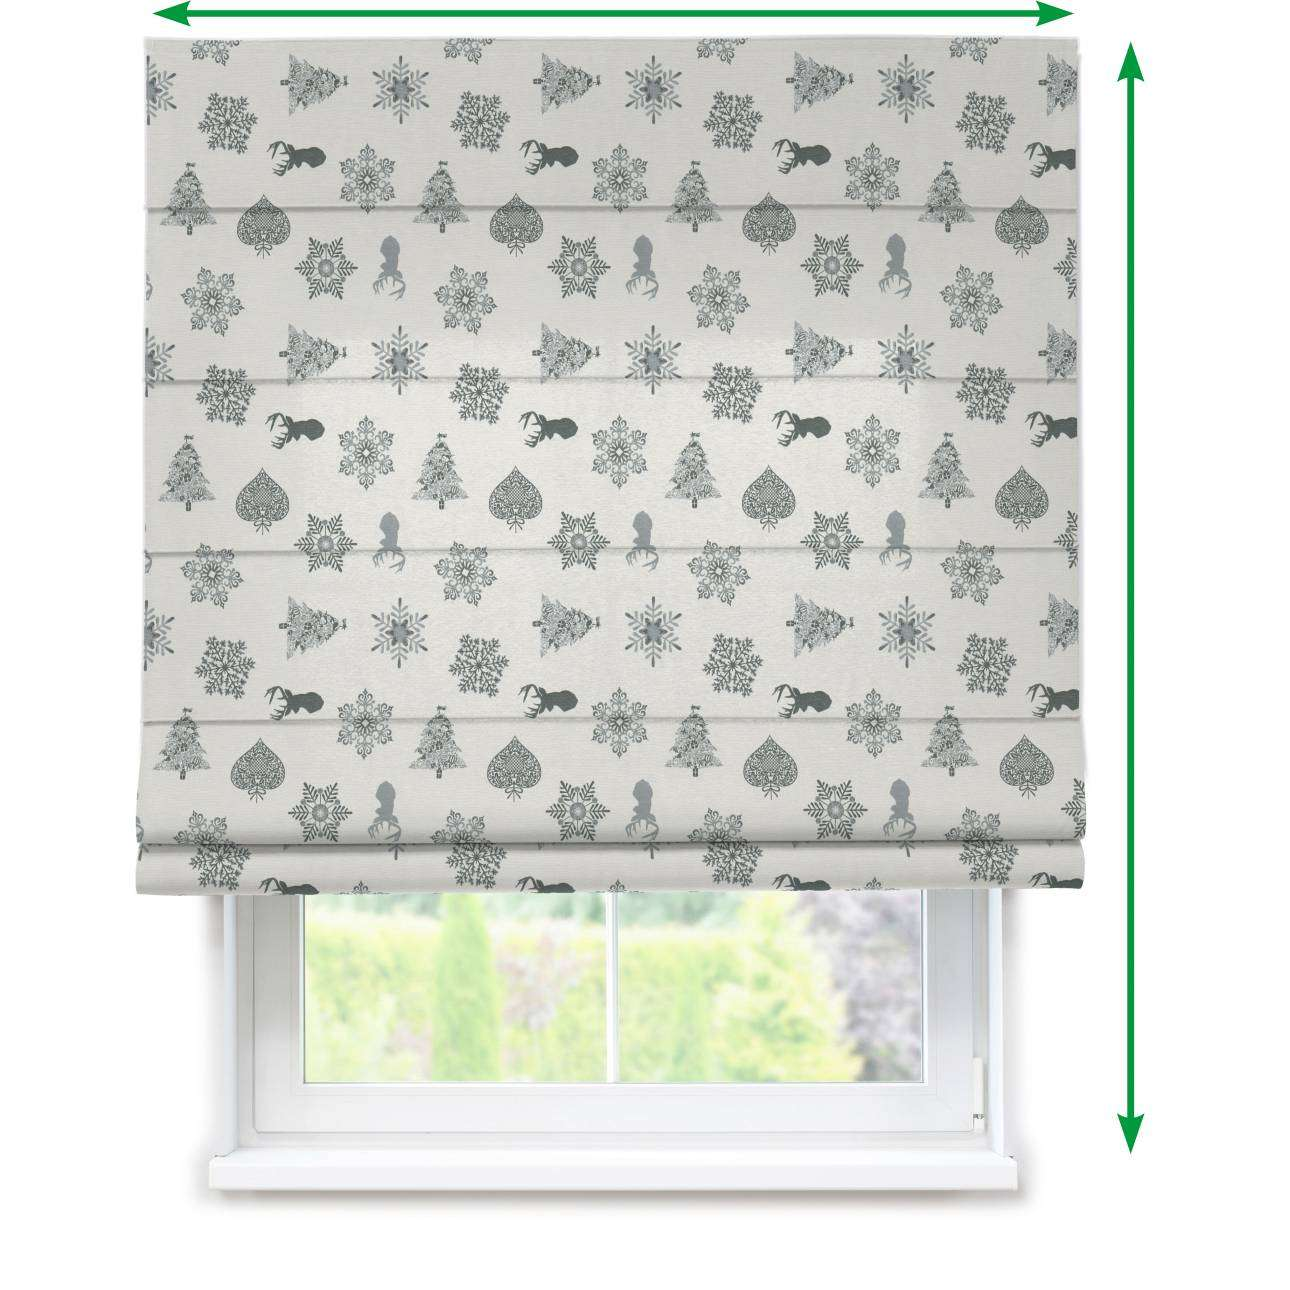 Capri roman blind in collection Christmas, fabric: 630-24